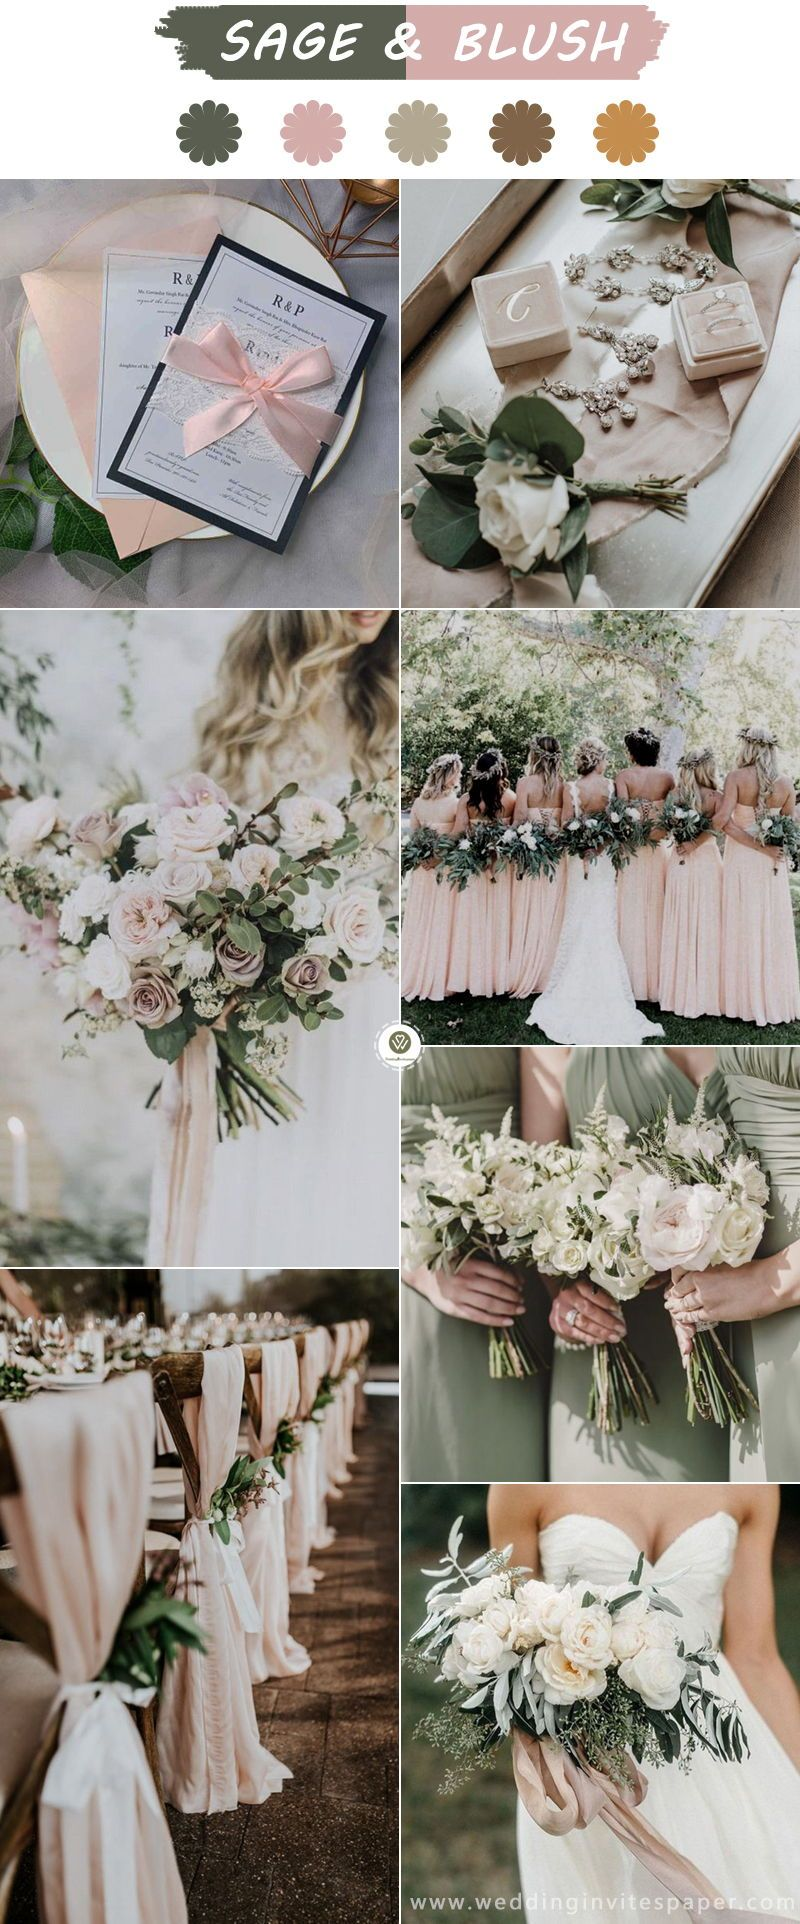 Sage Green Weddings-Top 6 Color Palettes for a Memorable Winter Day